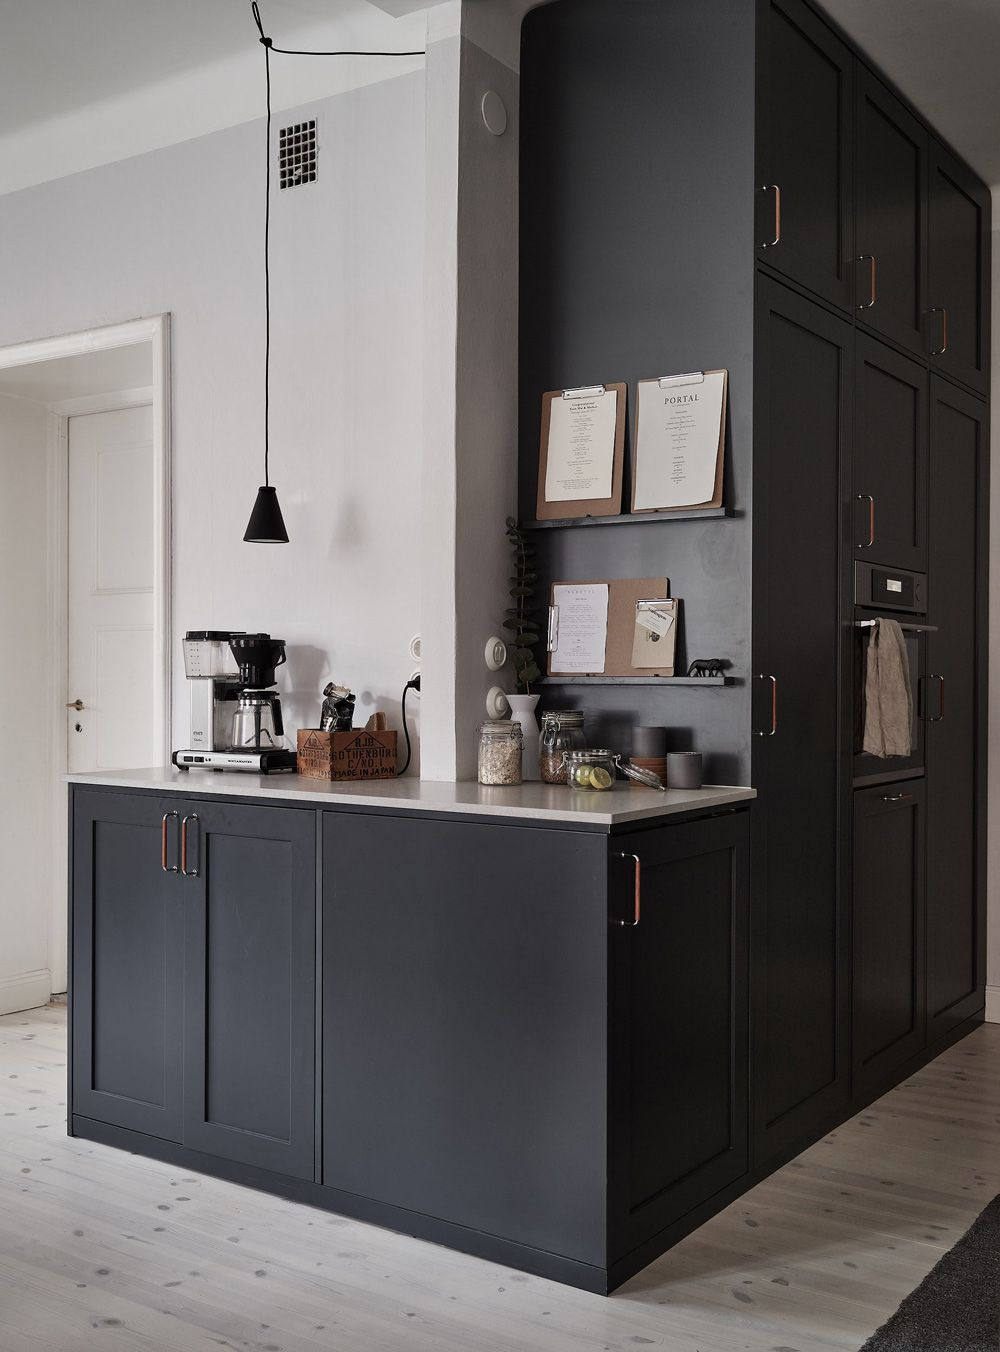 Küchendesign schwarz  beautiful and inspiring nonwhite kitchens that i loved lately